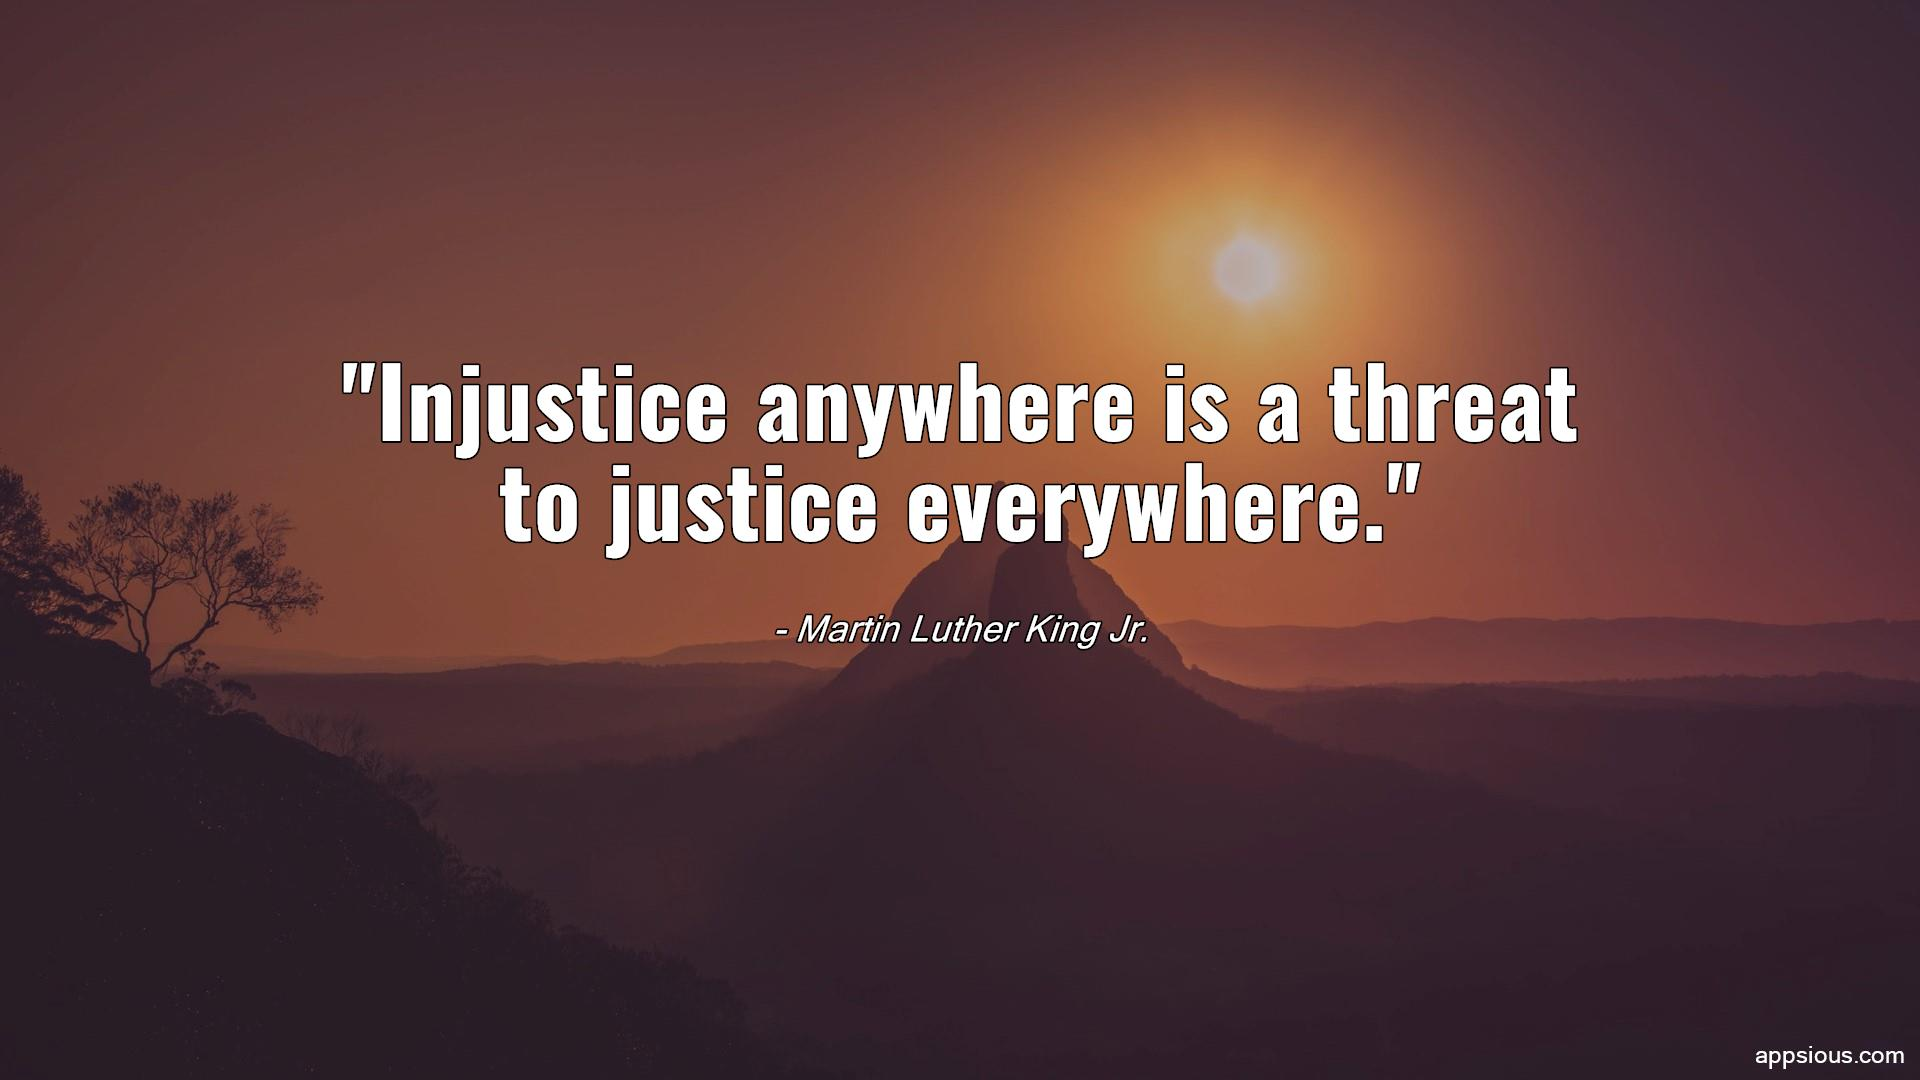 Injustice anywhere is a threat to justice everywhere.